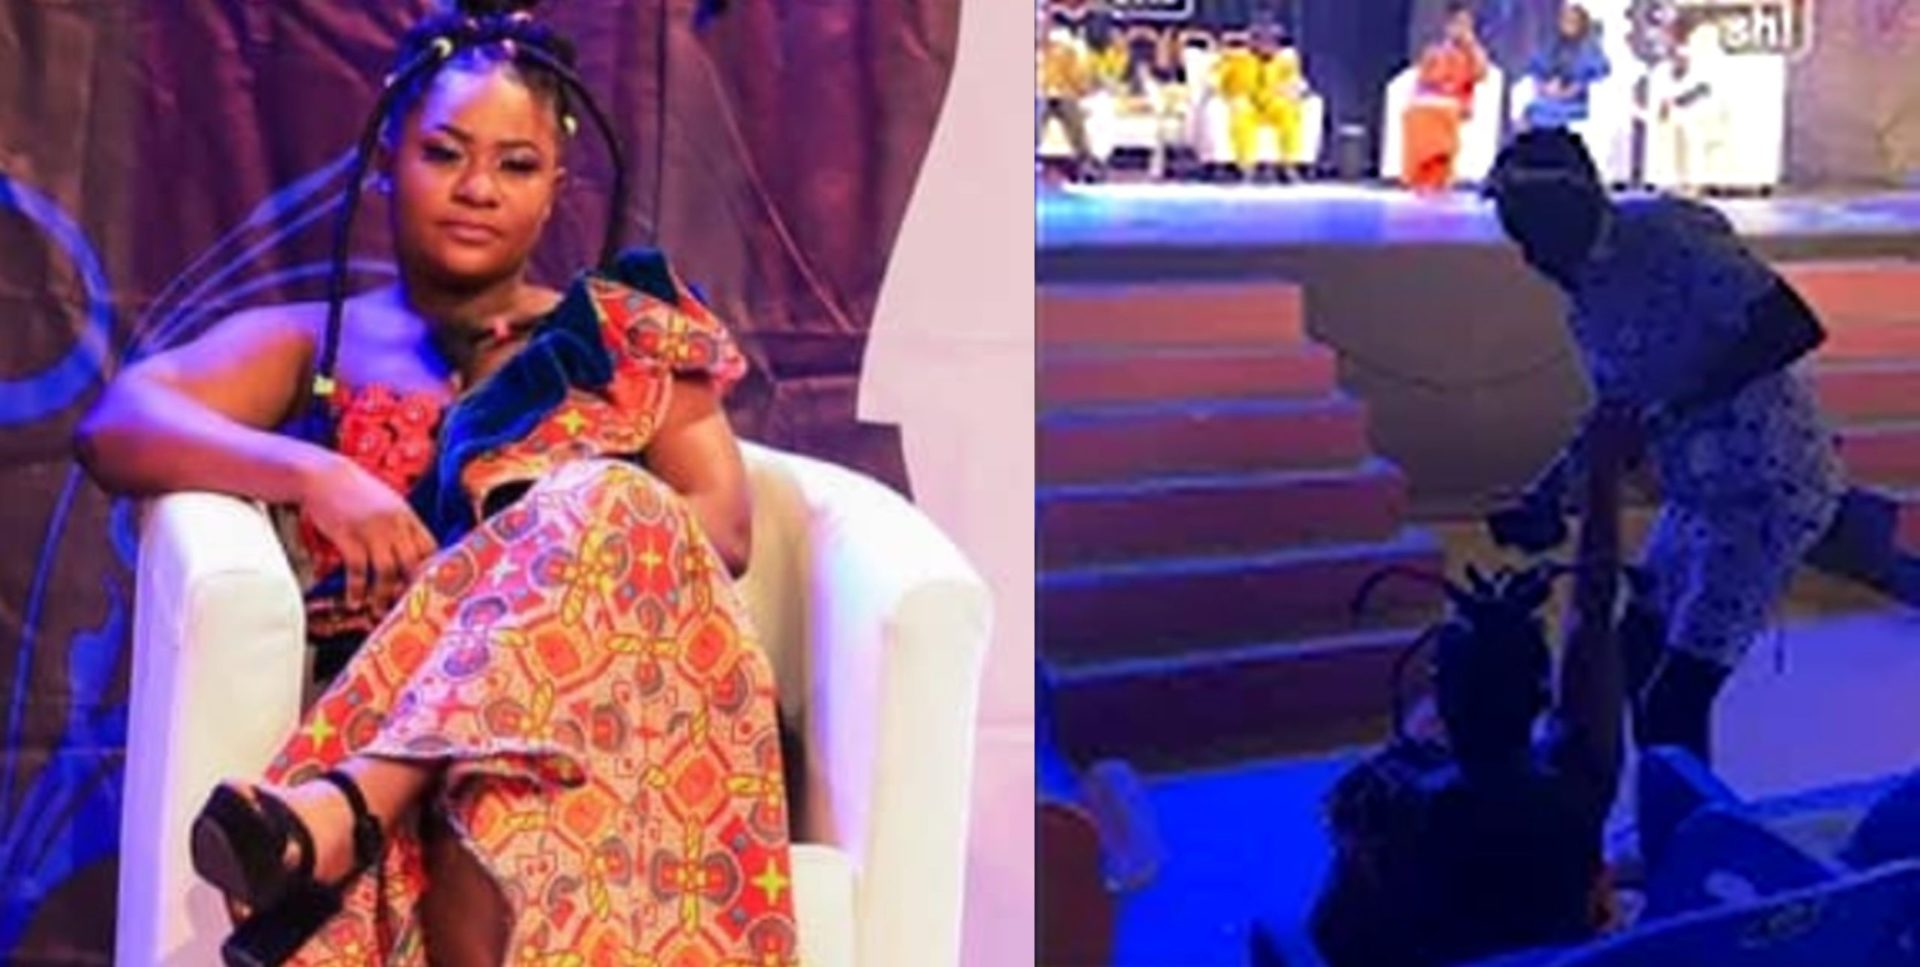 Video Of The Moment Ruth Of Date Rush Fame Fell Down On Stage During The Date Rush Reunion Surfaces Online